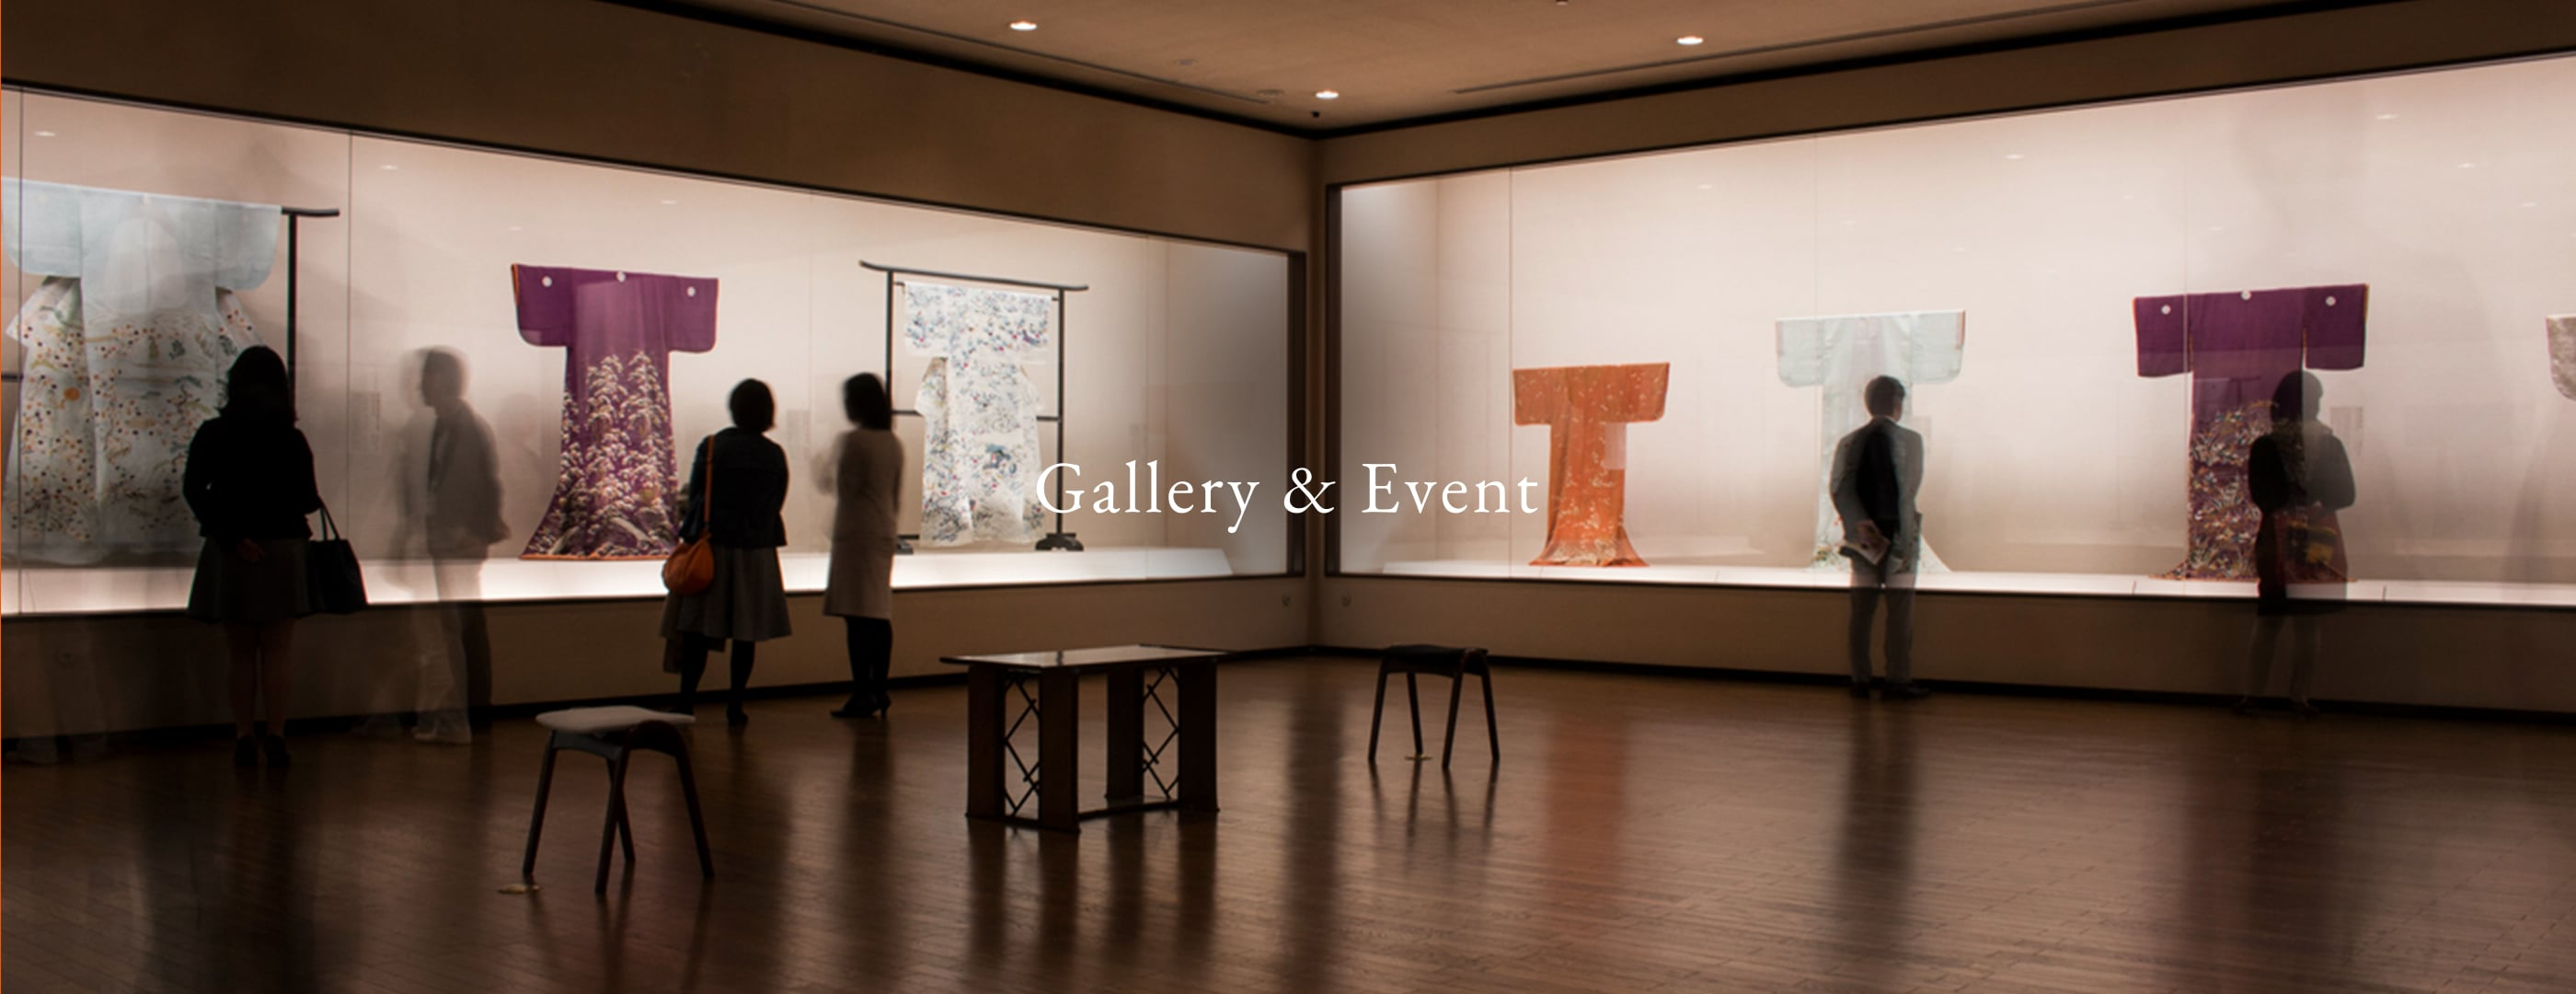 Gallery & Event